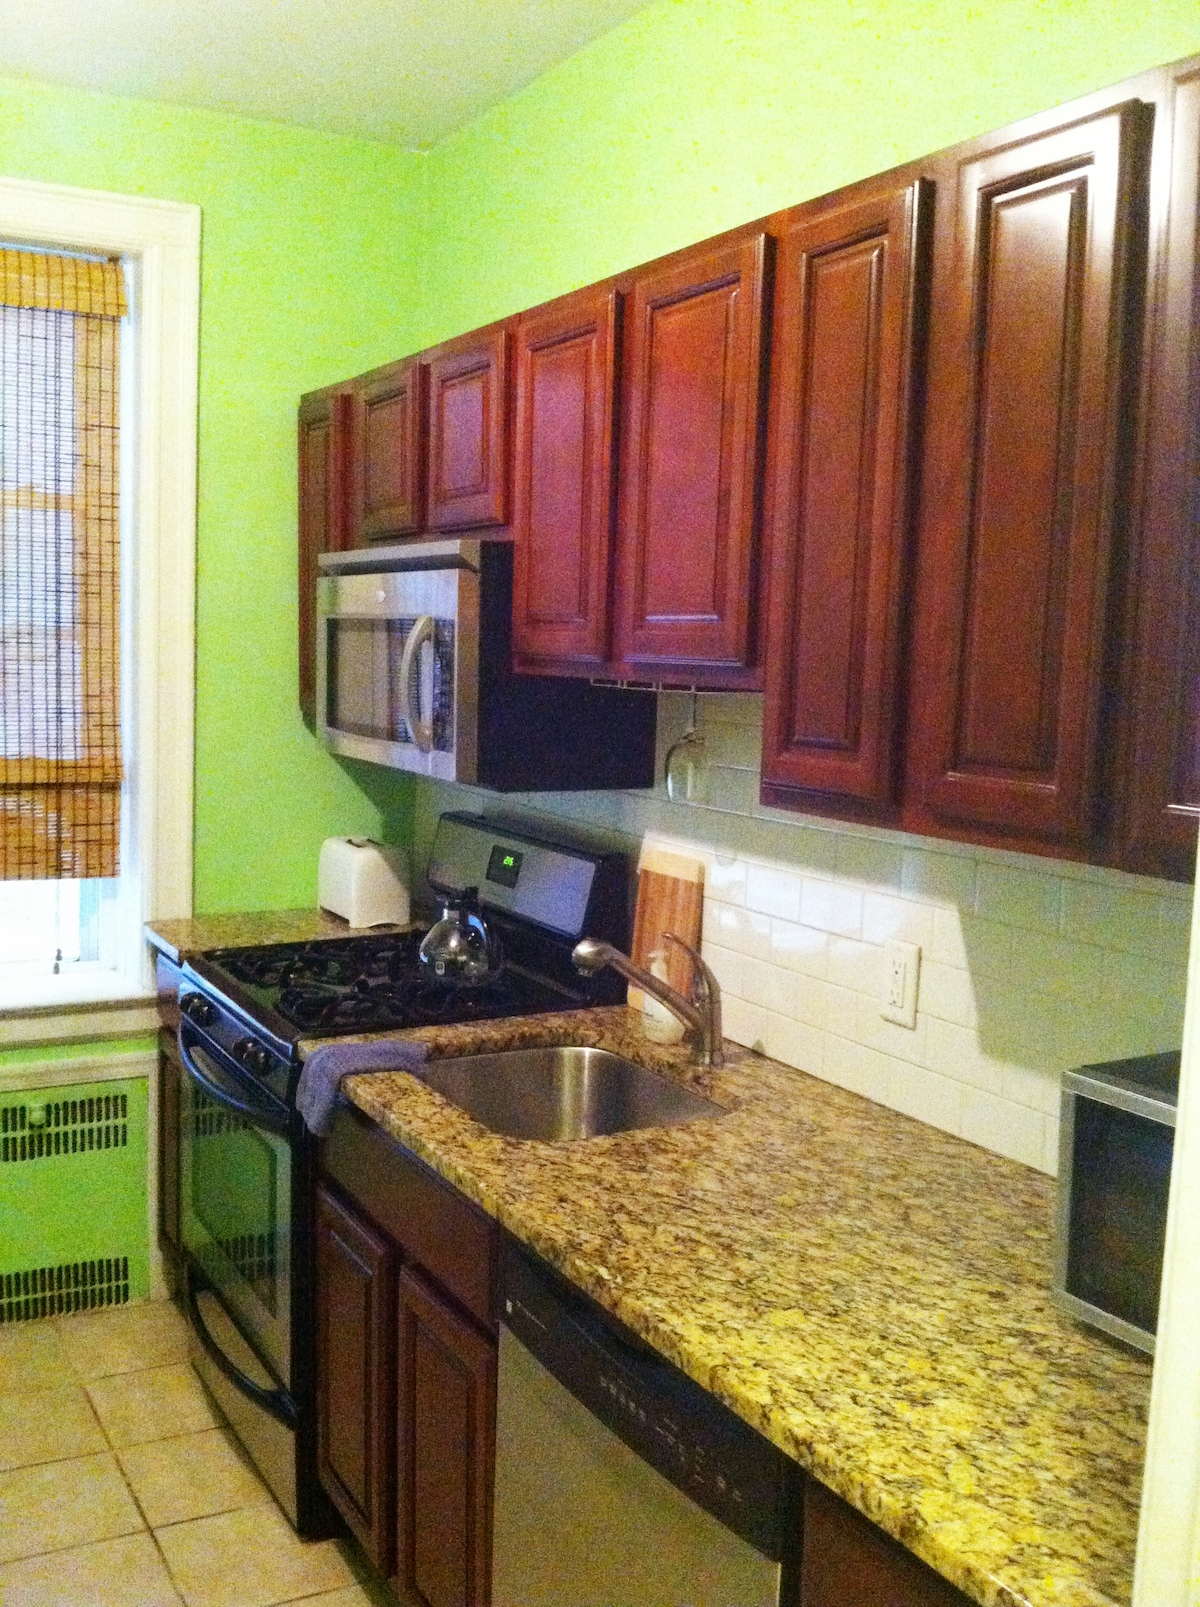 This kitchen is equipped with everyhting you will need. Granite countertops, stainless steel appliances and cherry wood cabinets.